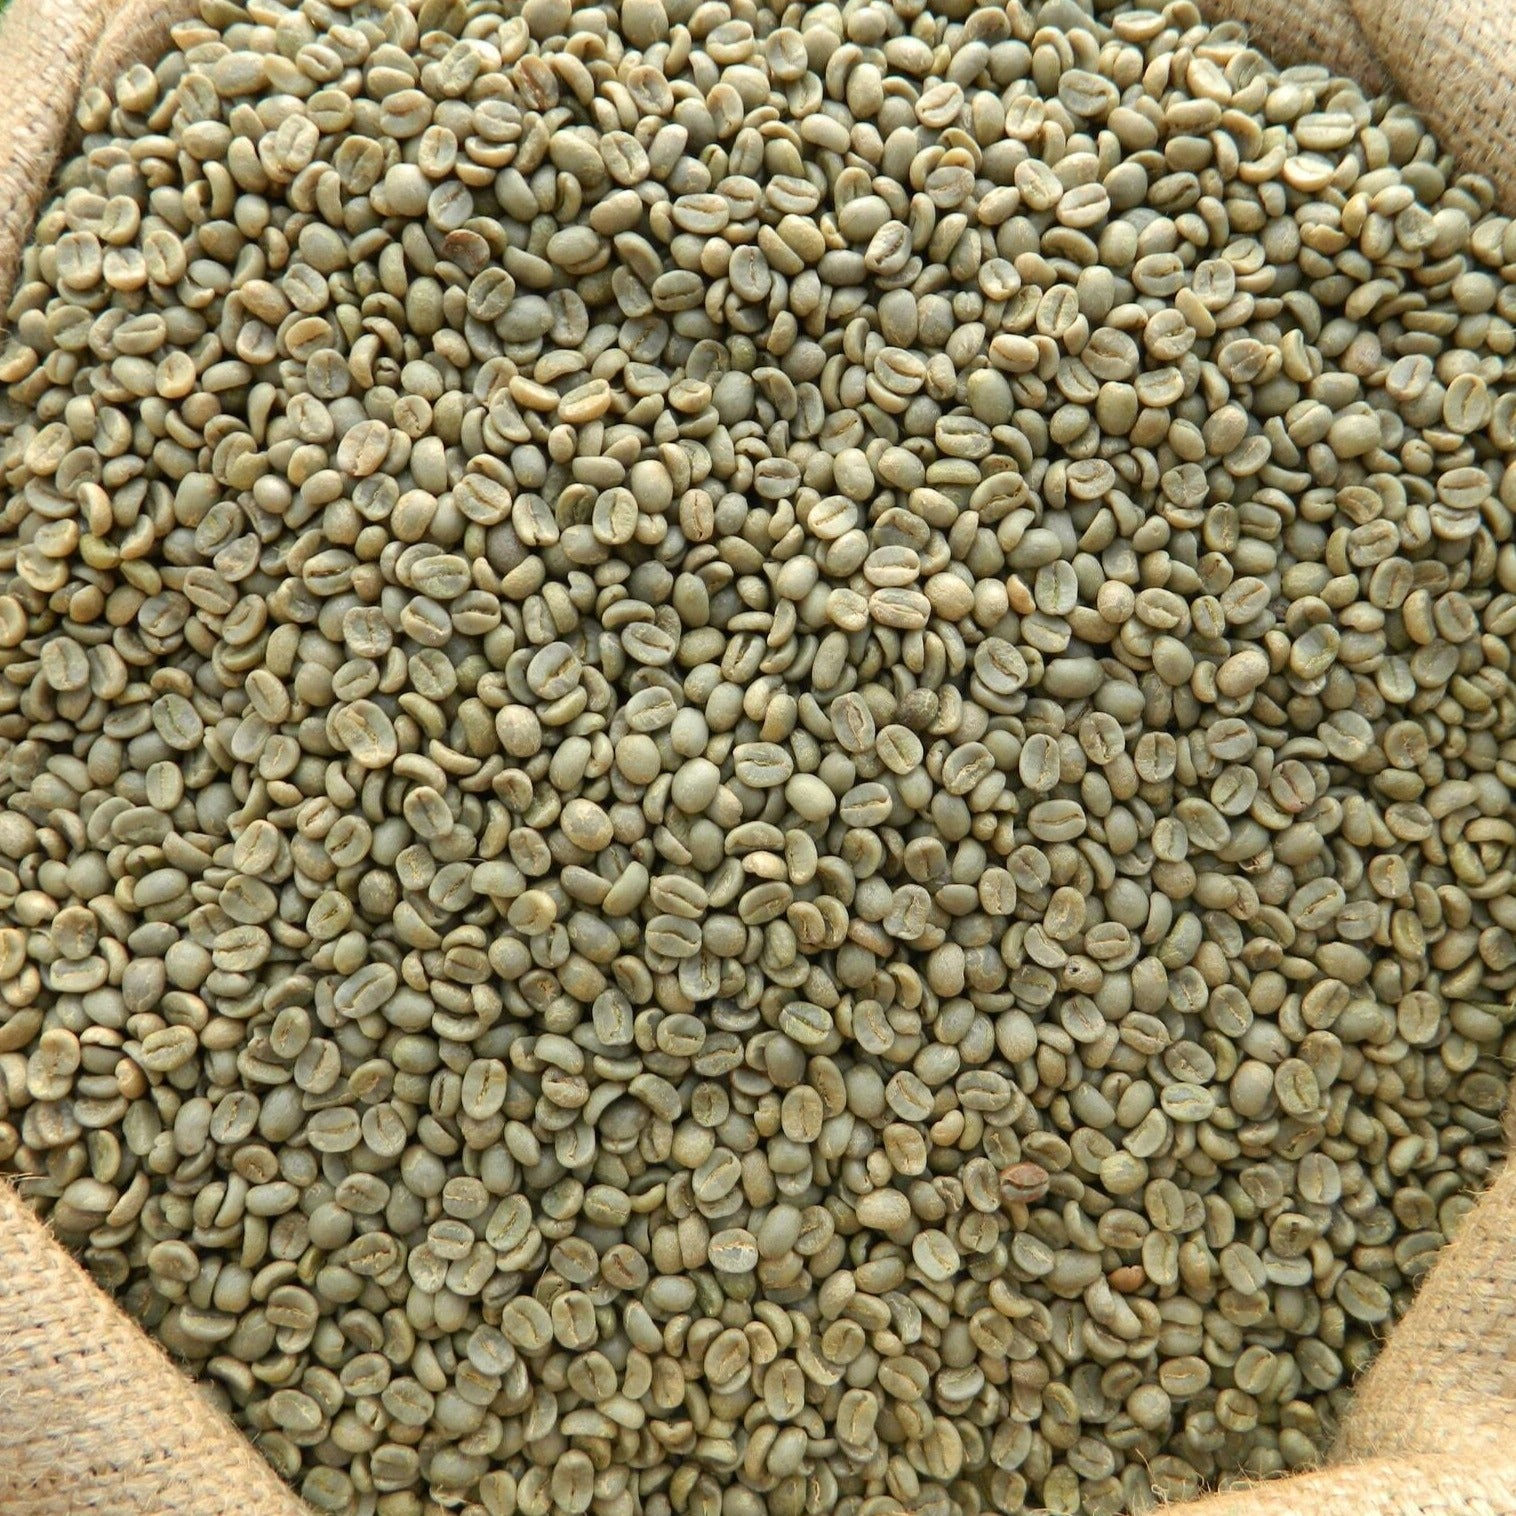 green coffee beans from ethiopa; these beans are best enjoyed as a light roast